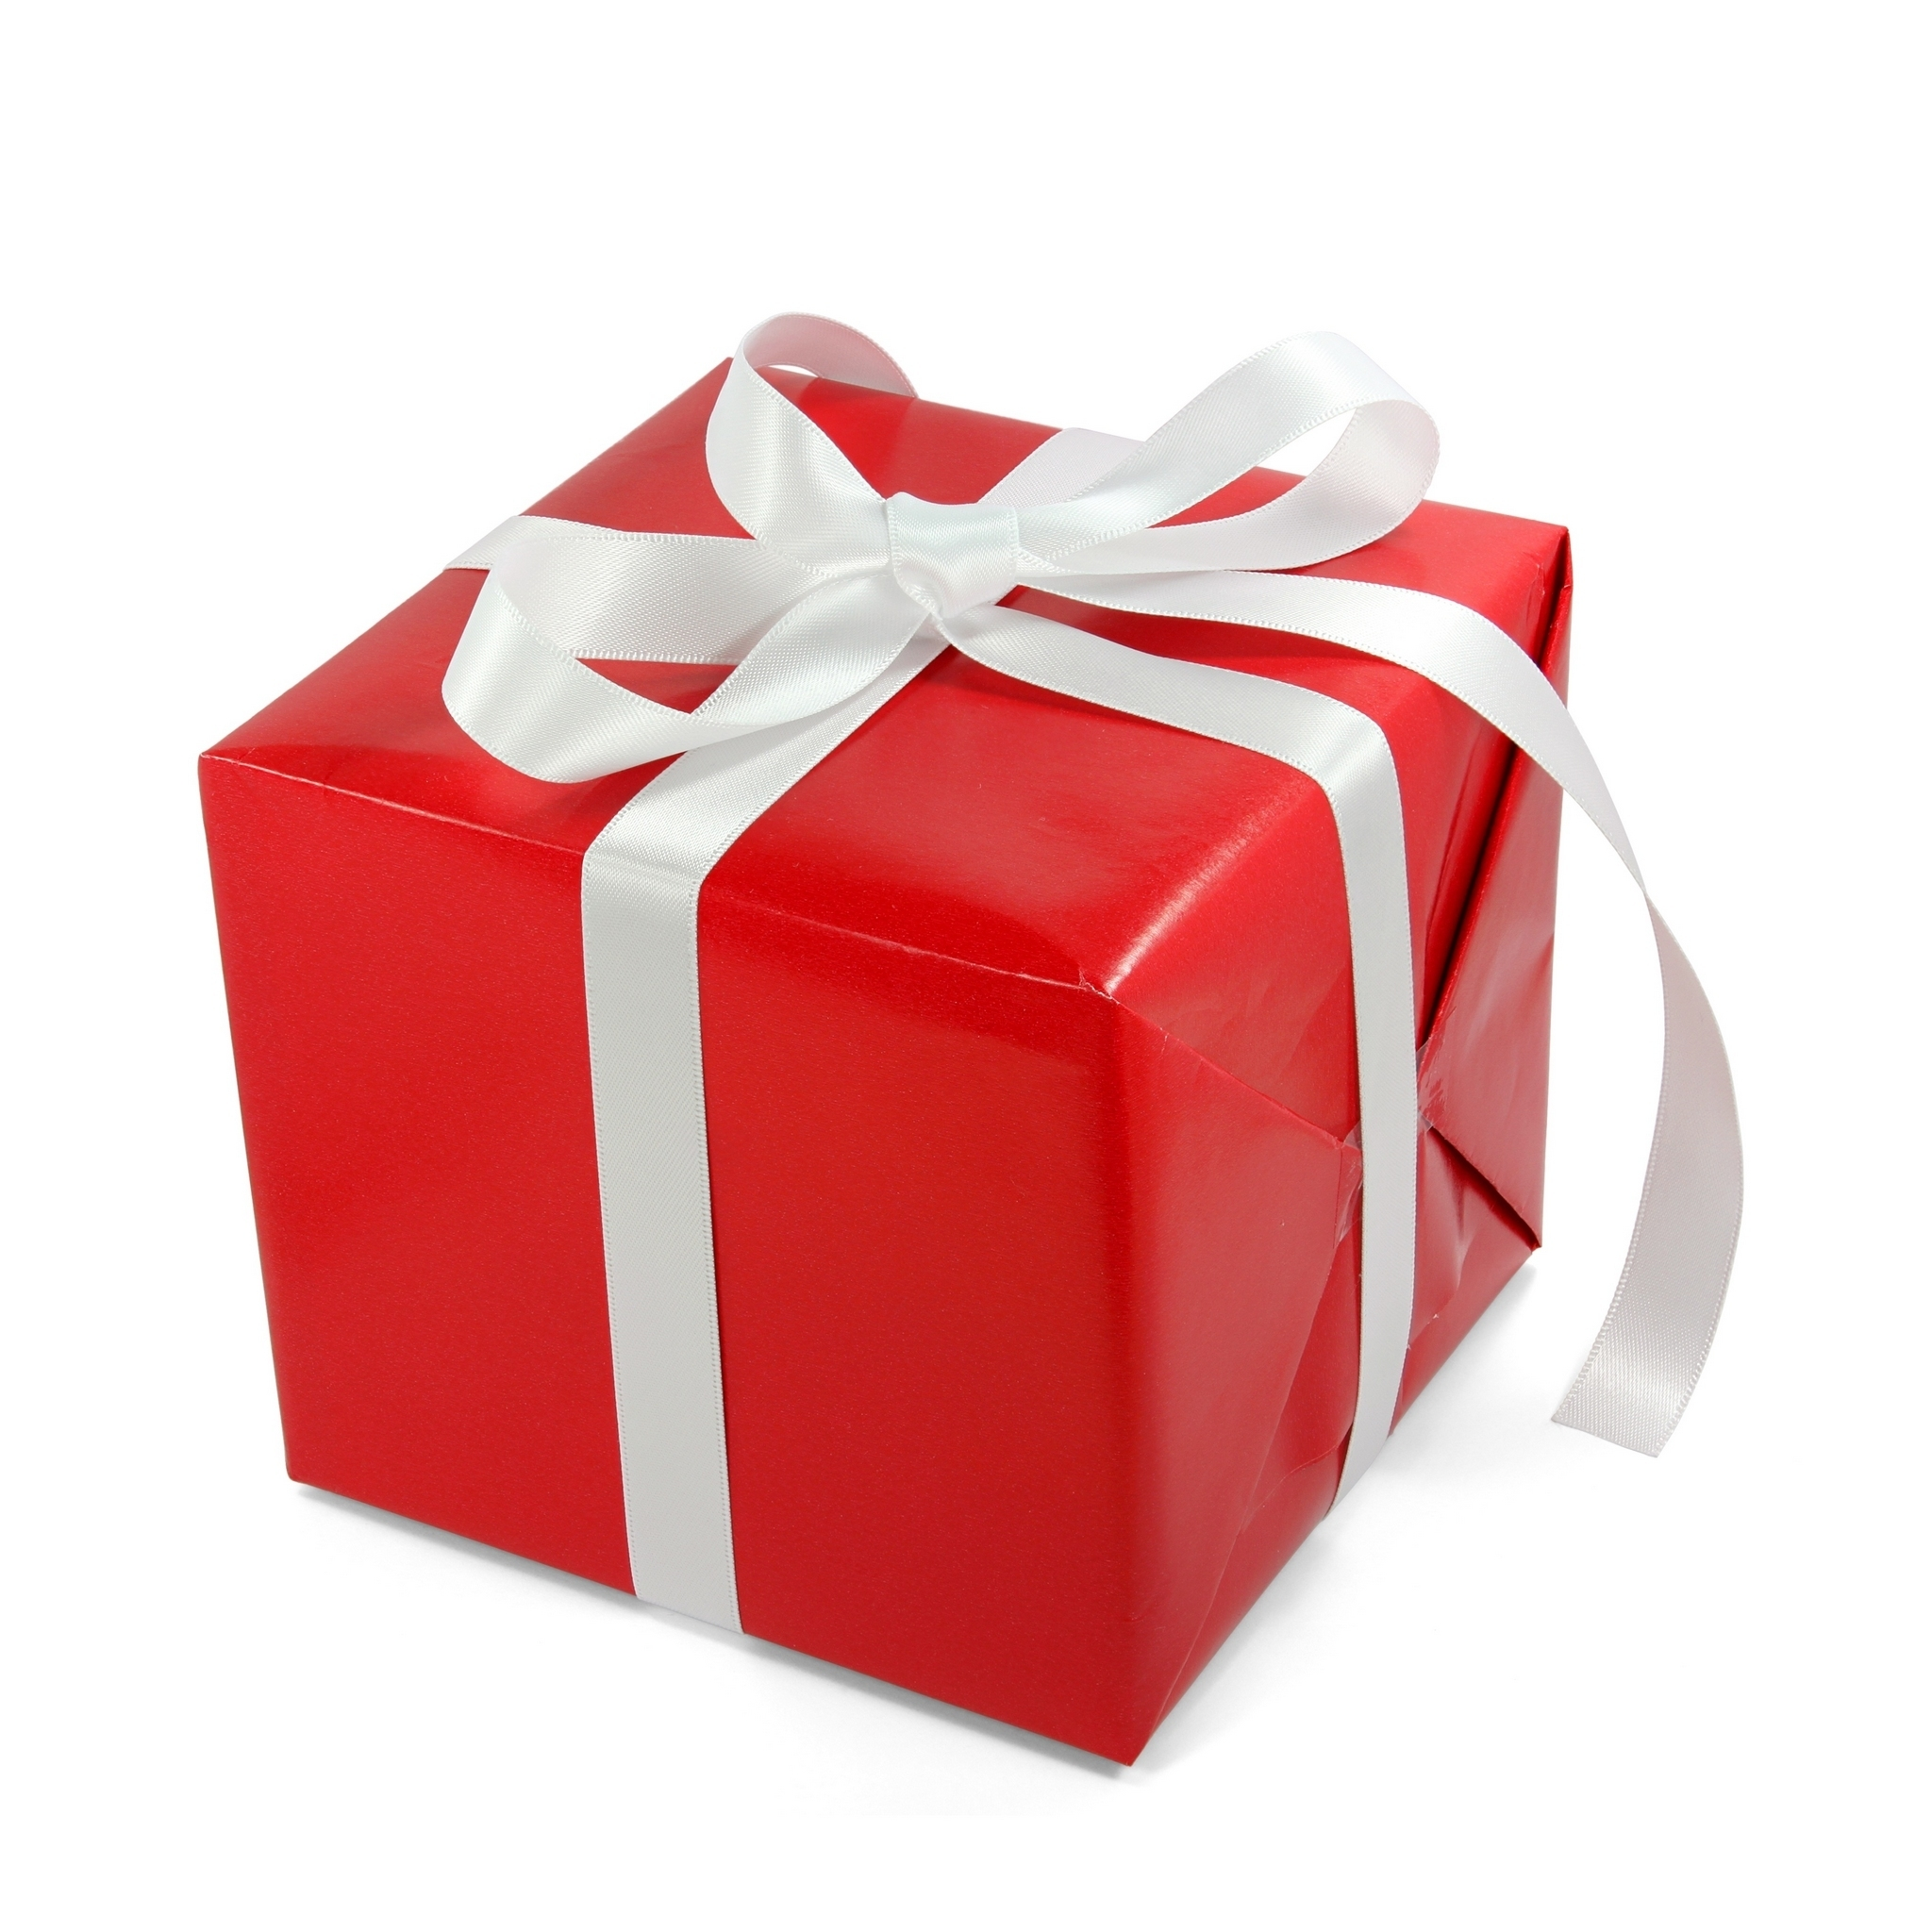 Red Gift Box with White Band #4240487, 2048x2048 | All For ...